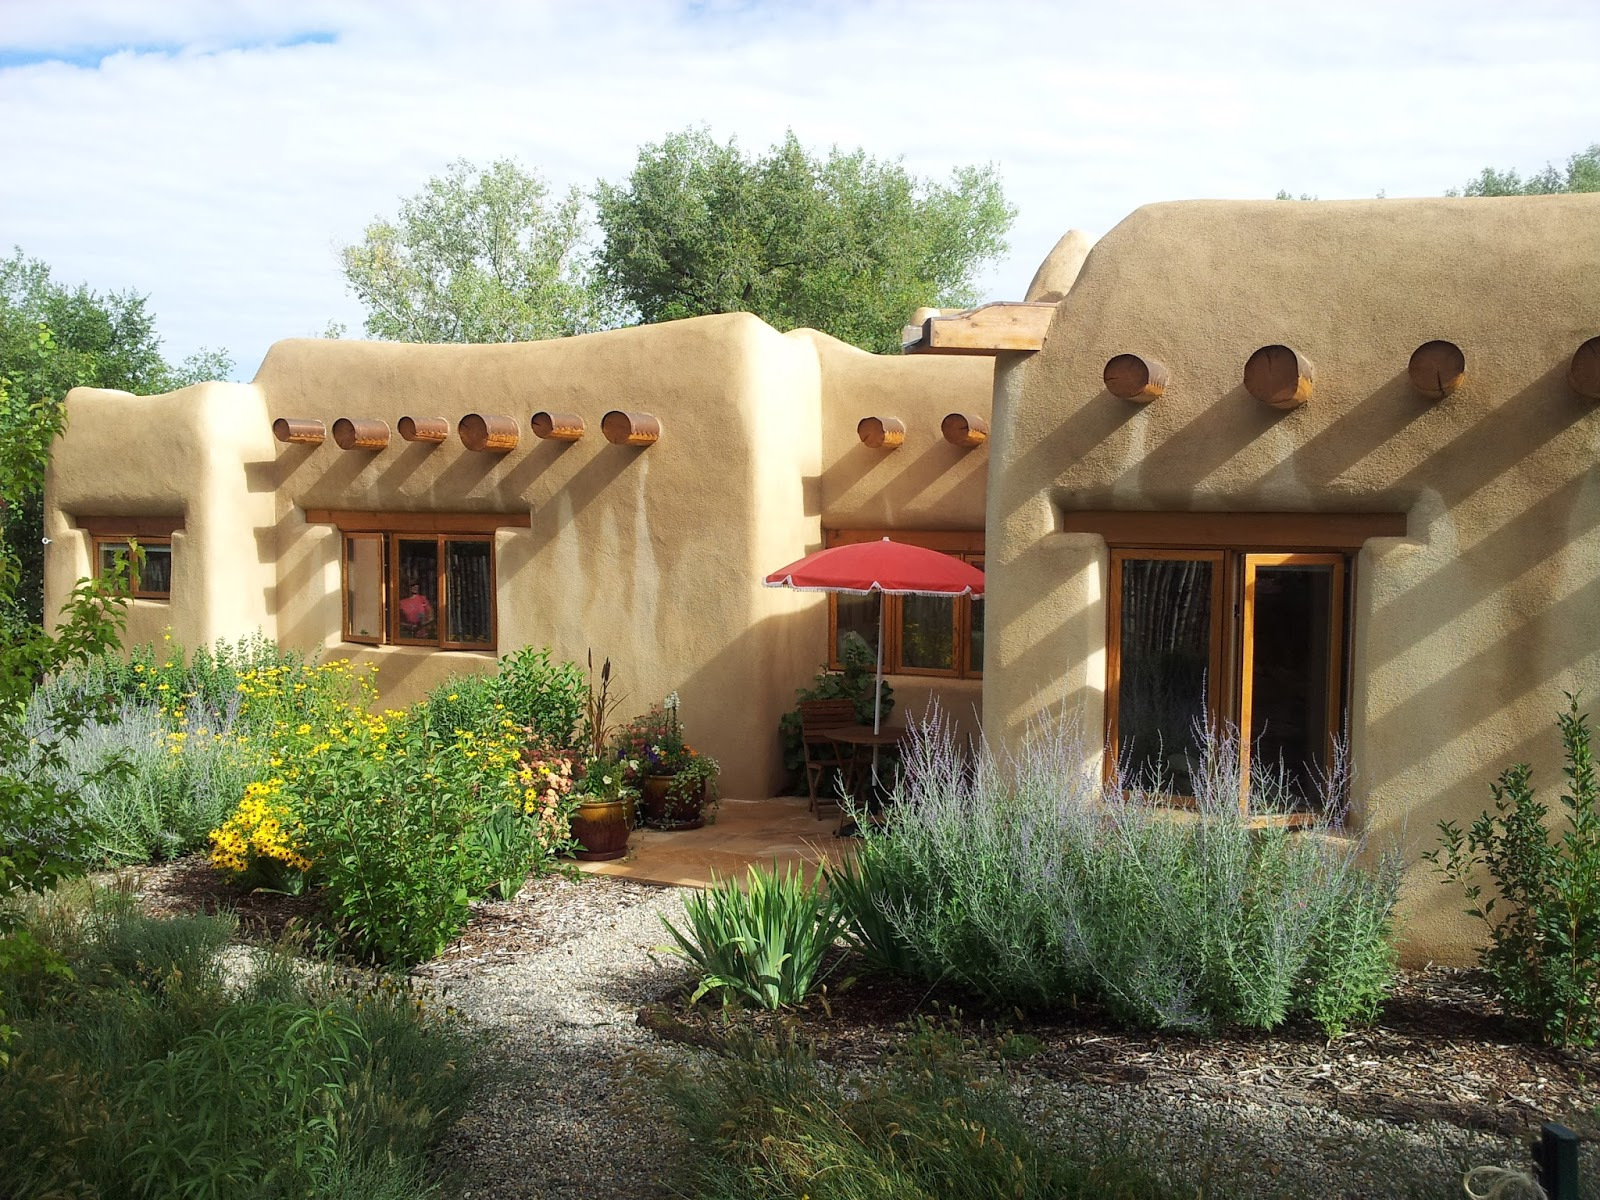 California girl in taos taos garden home tour 2013 for Adobe home builders california